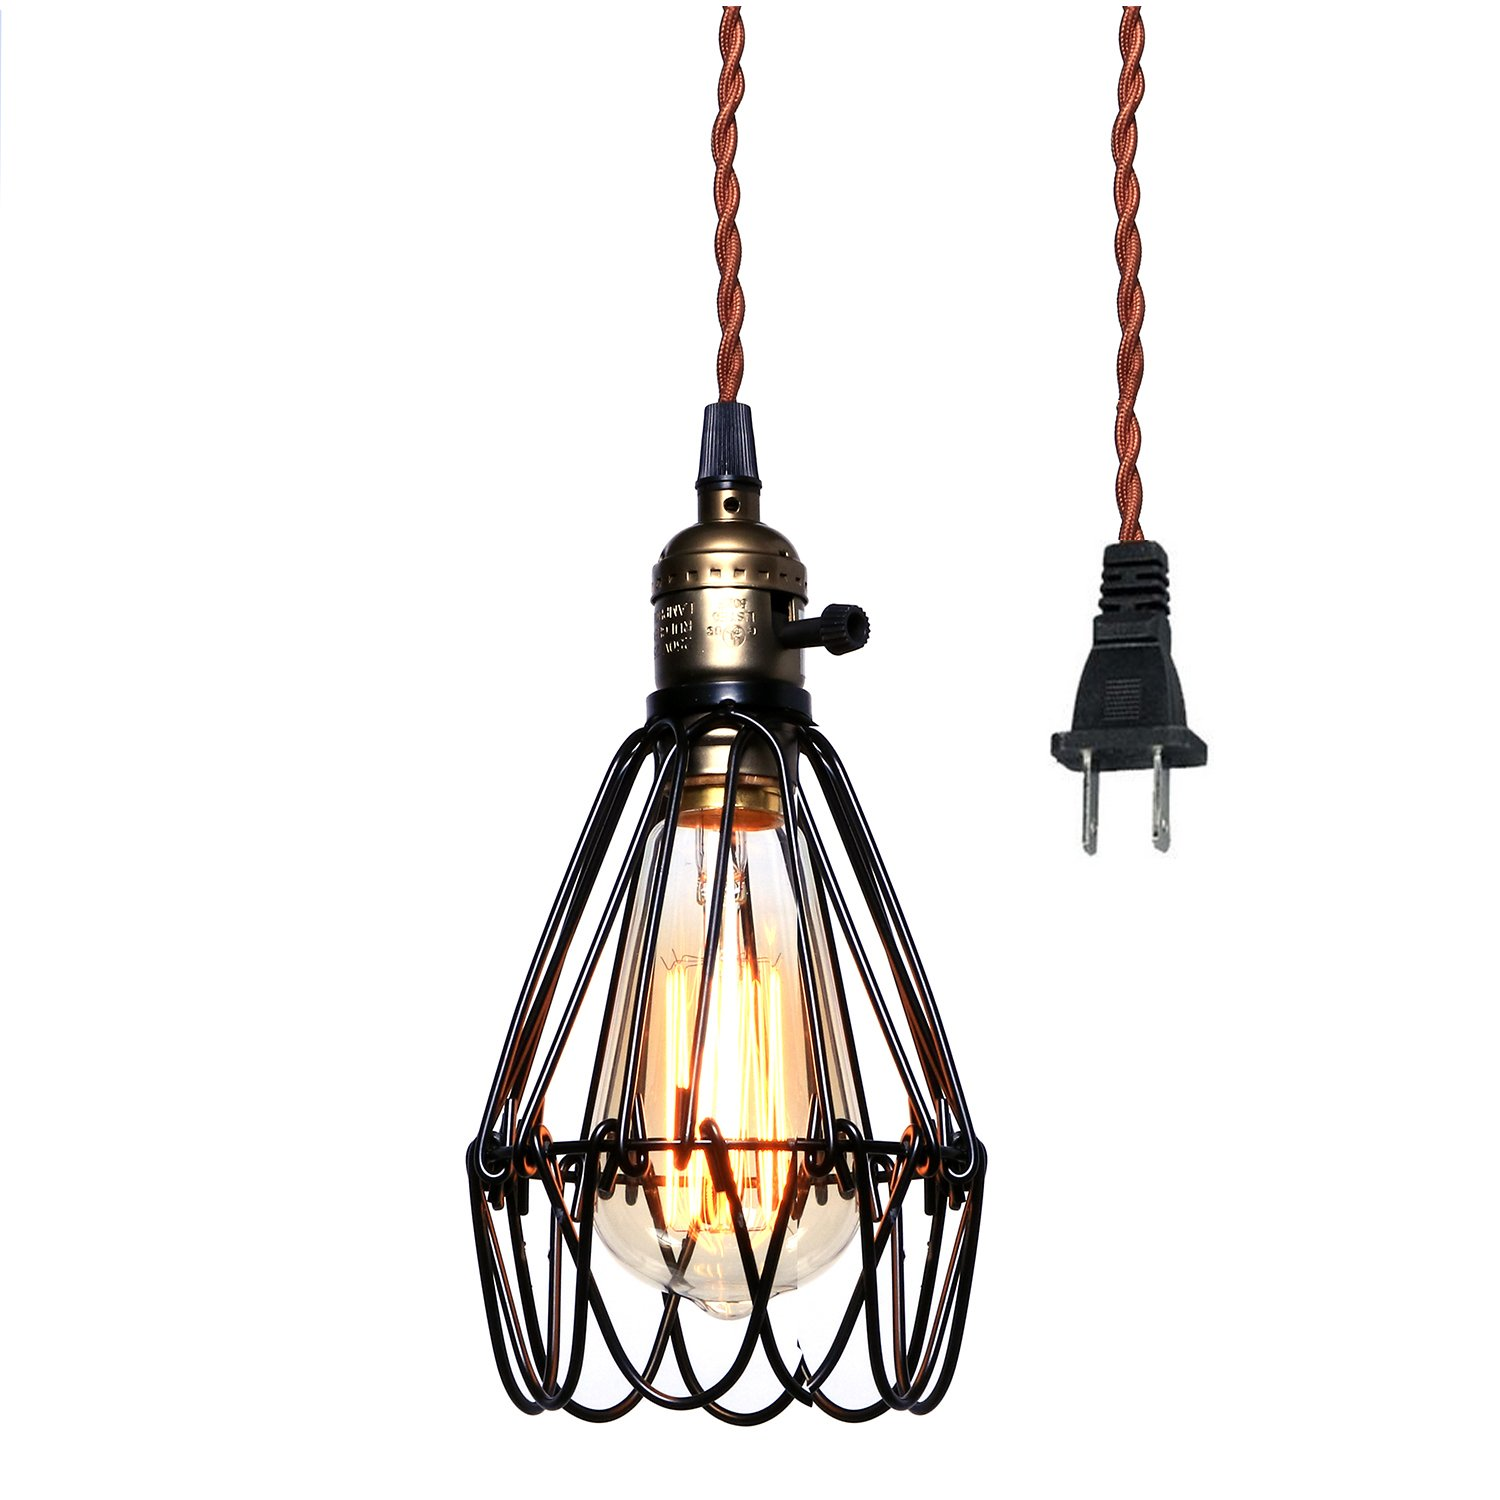 Pauwer Vintage Pendant Light, Wire Cage Lamp Plug-in Edison Pendant Light Cage with On/Off Switch